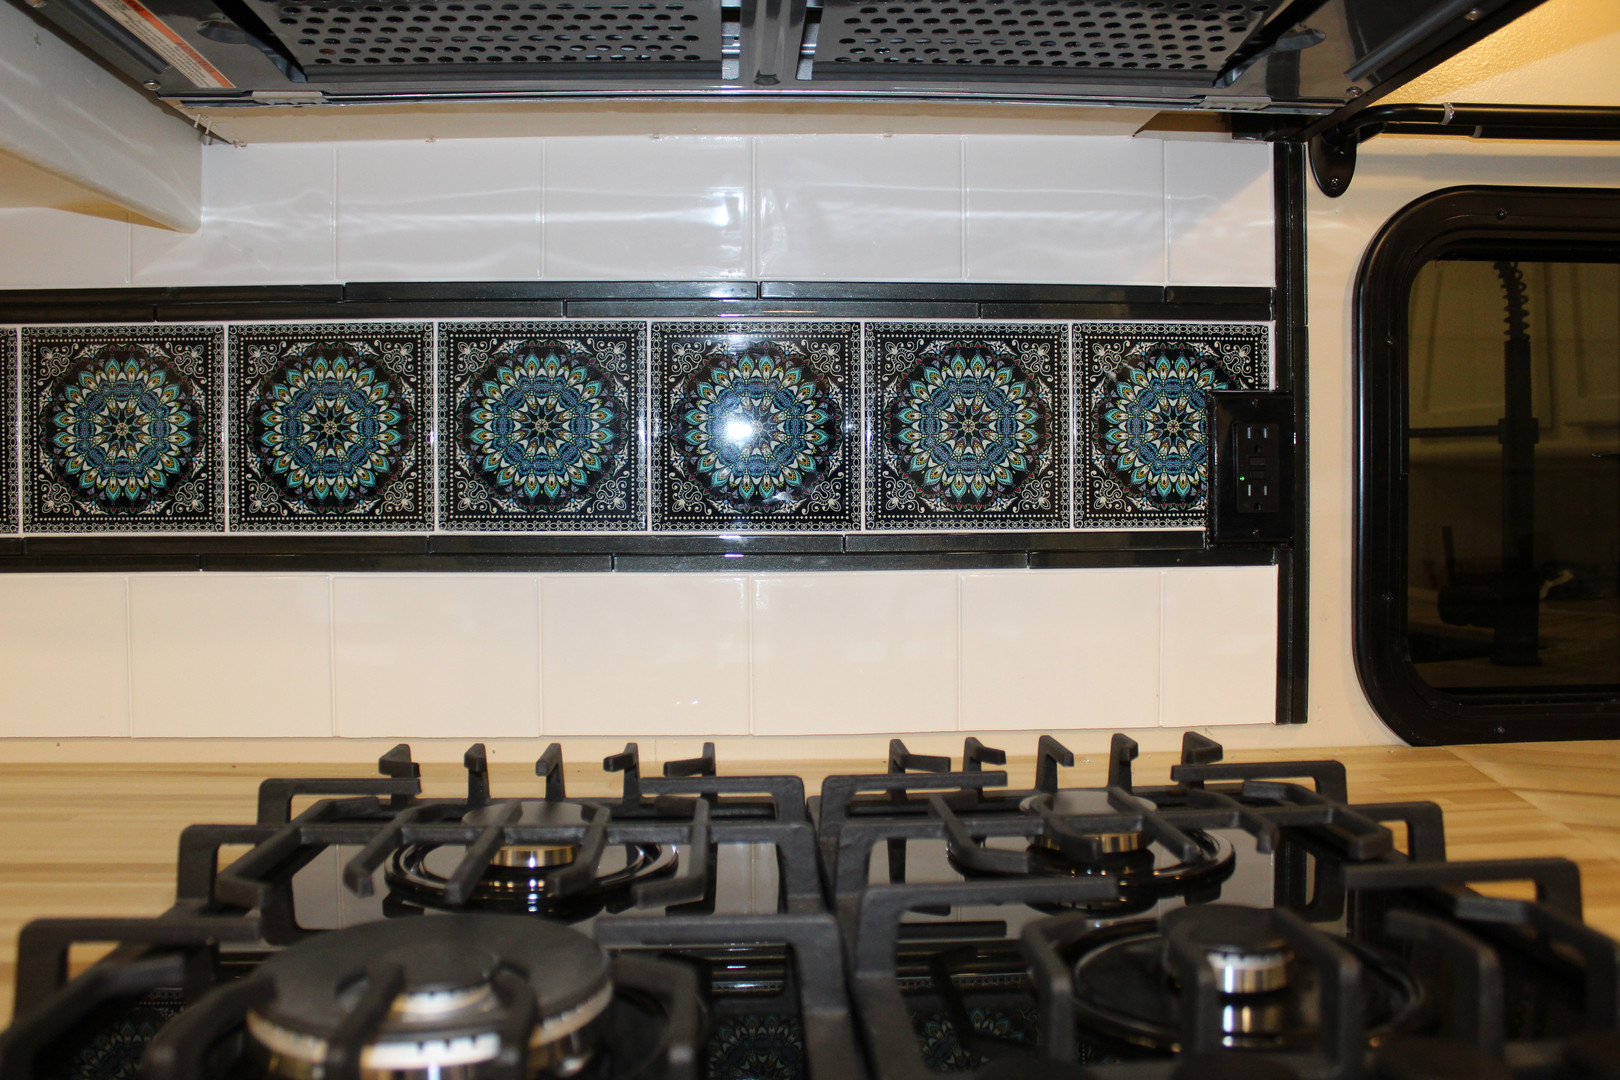 After - Stovetop with Tile Backsplash